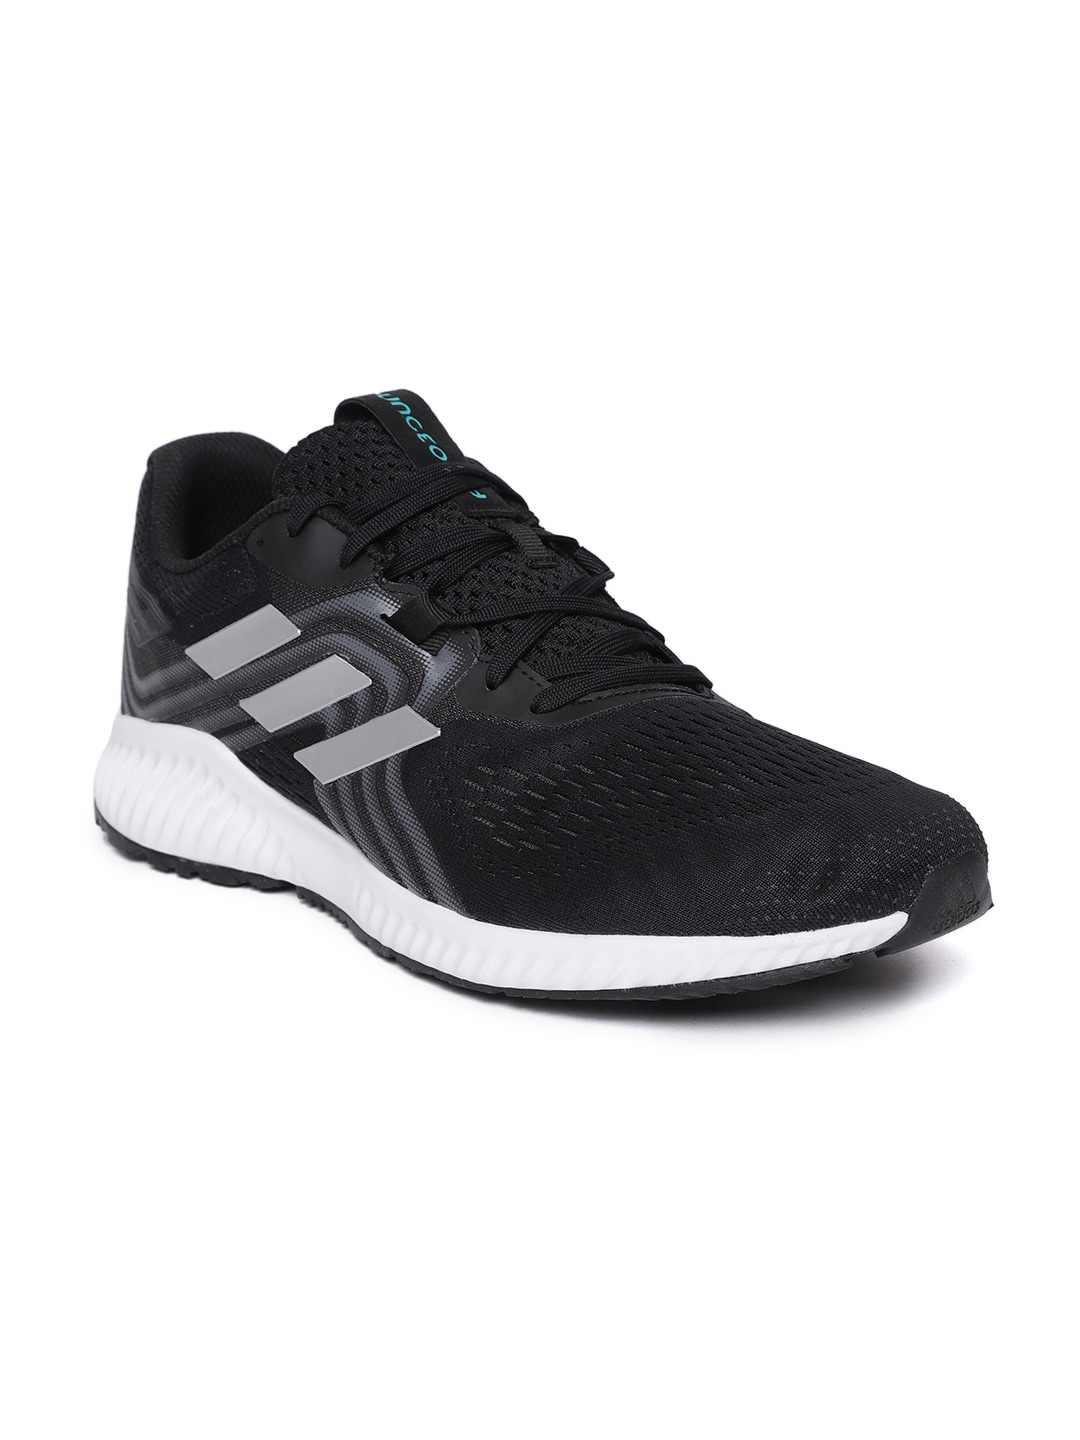 online store 35d78 61671 Adidas Bounce Shoes - Buy Adidas Bounce Shoes online in Indi